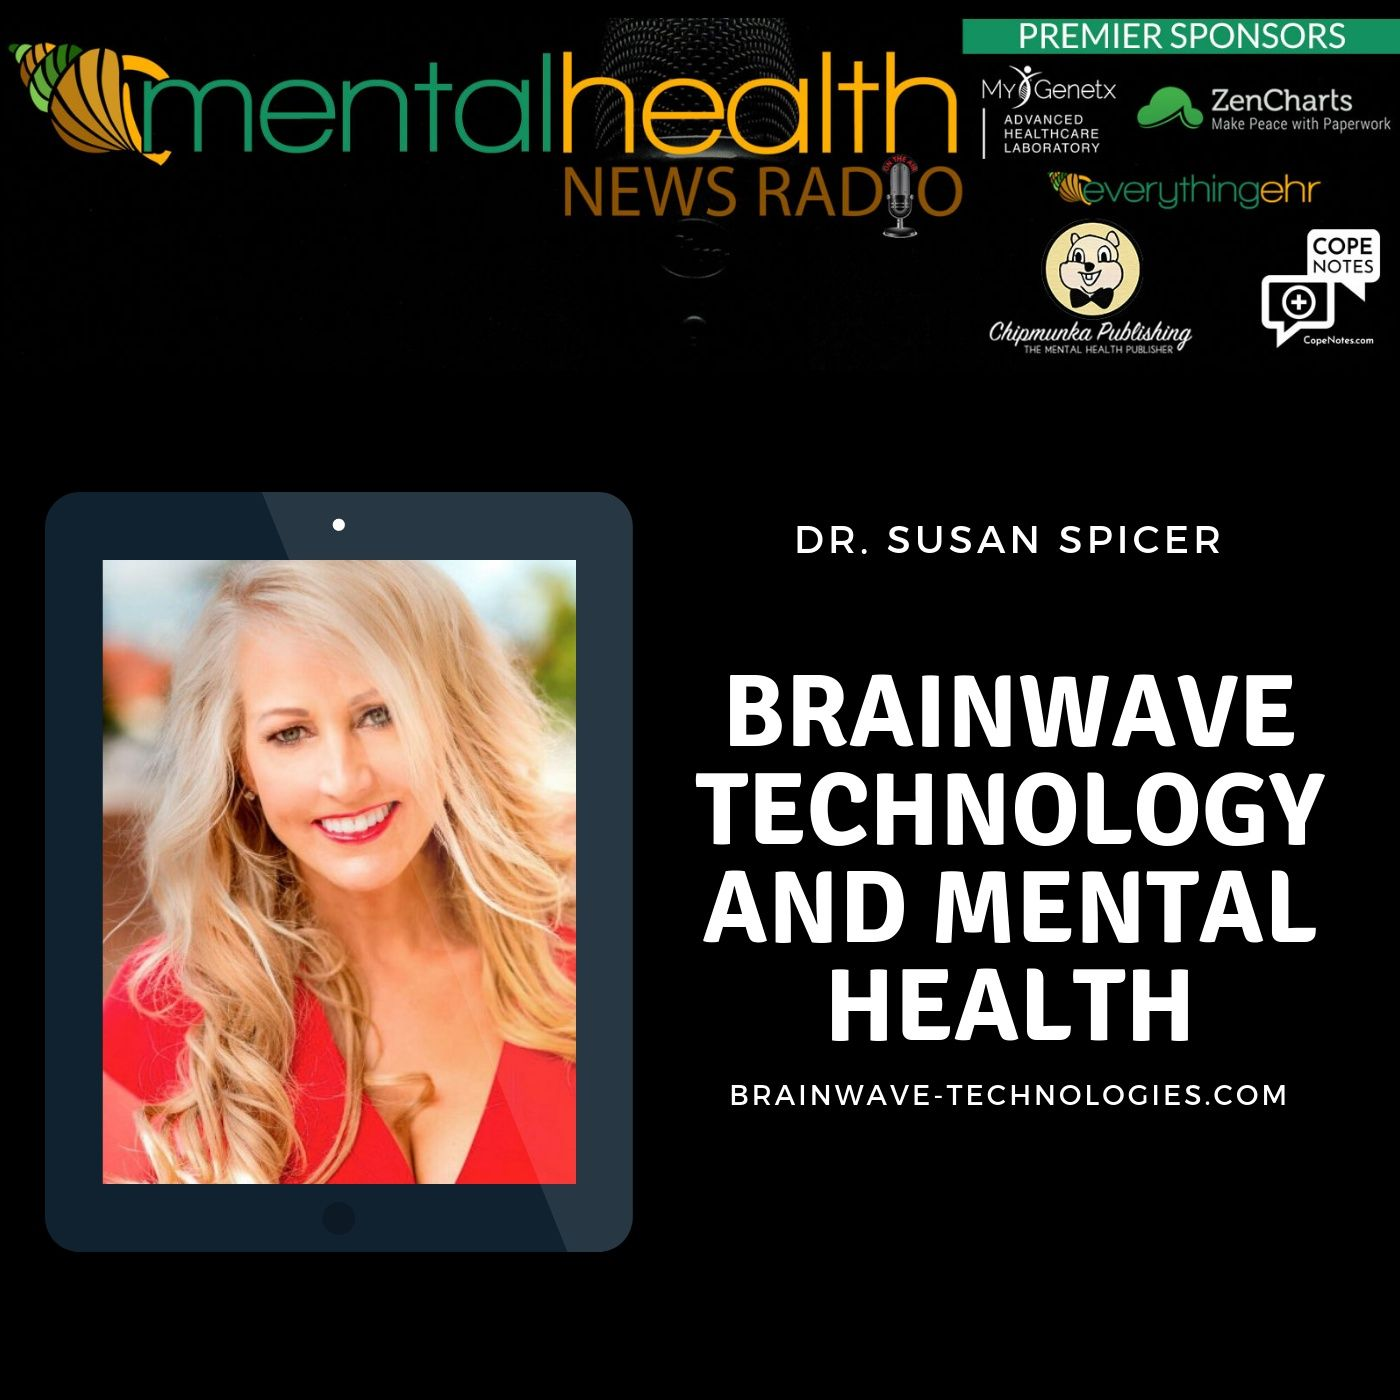 Mental Health News Radio - Brainwave Technology and Mental Health with Dr. Susan Spicer